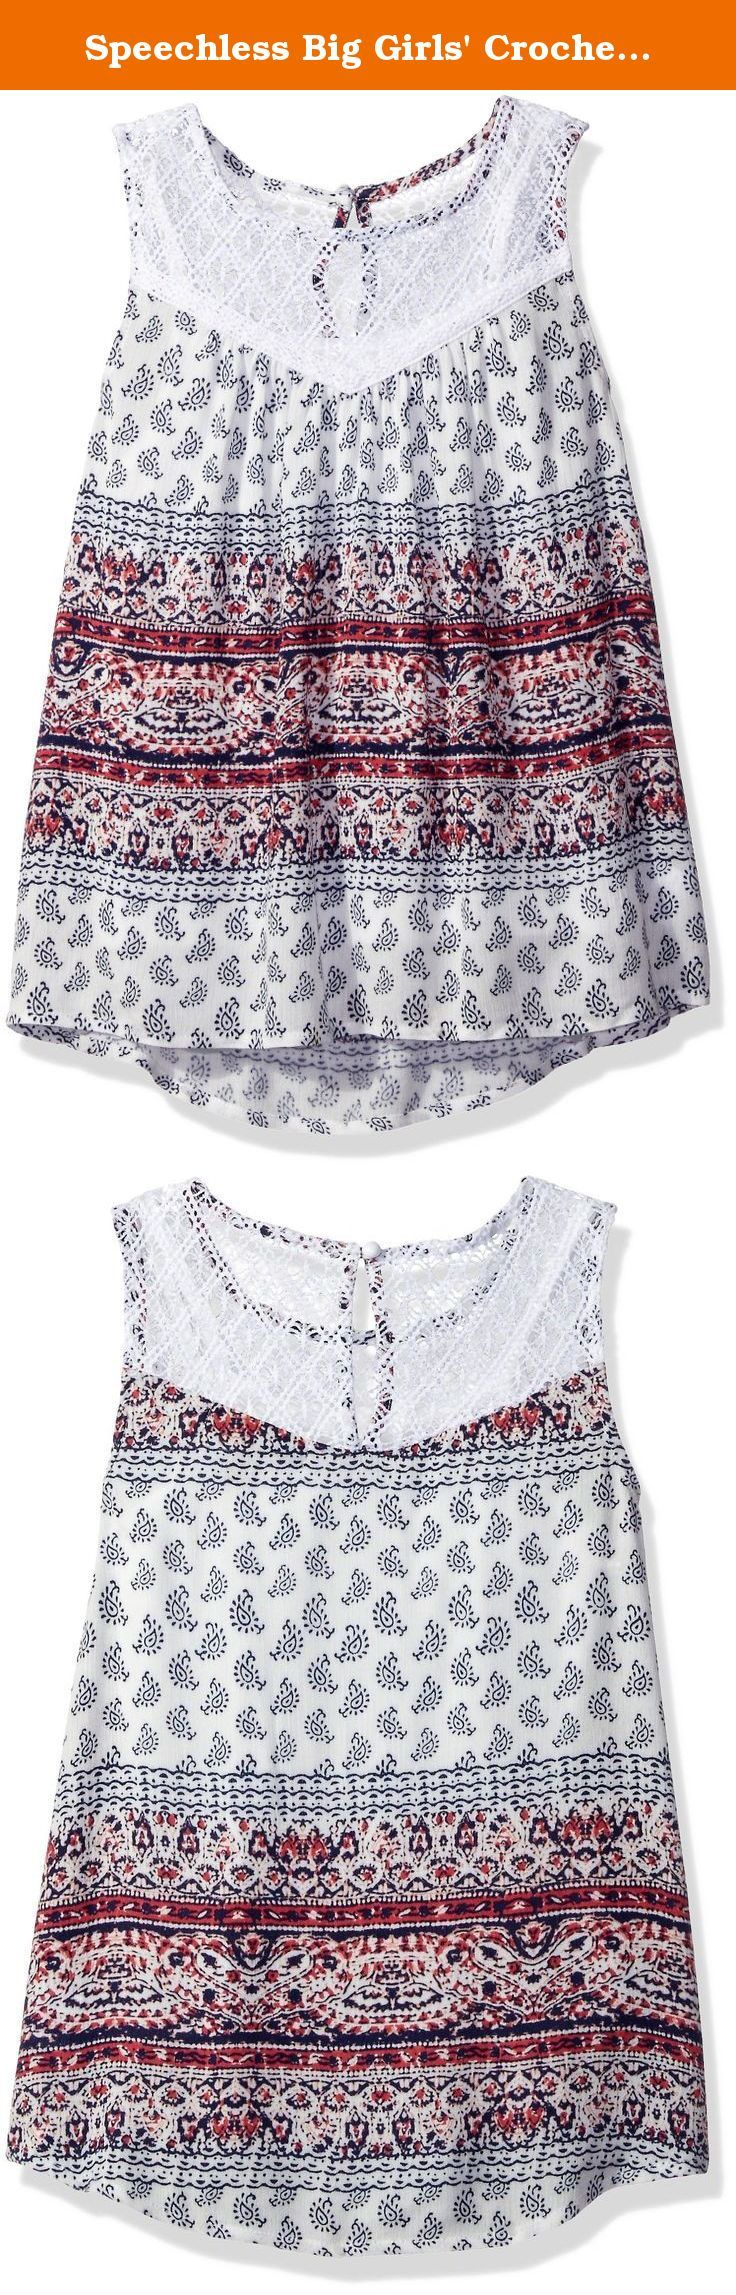 Speechless Big Girls' Crochet/Gauze Top, Ivory/Red, Medium. Two piece top sleeveless baby doll top with a crochet trim at the neck and cami.